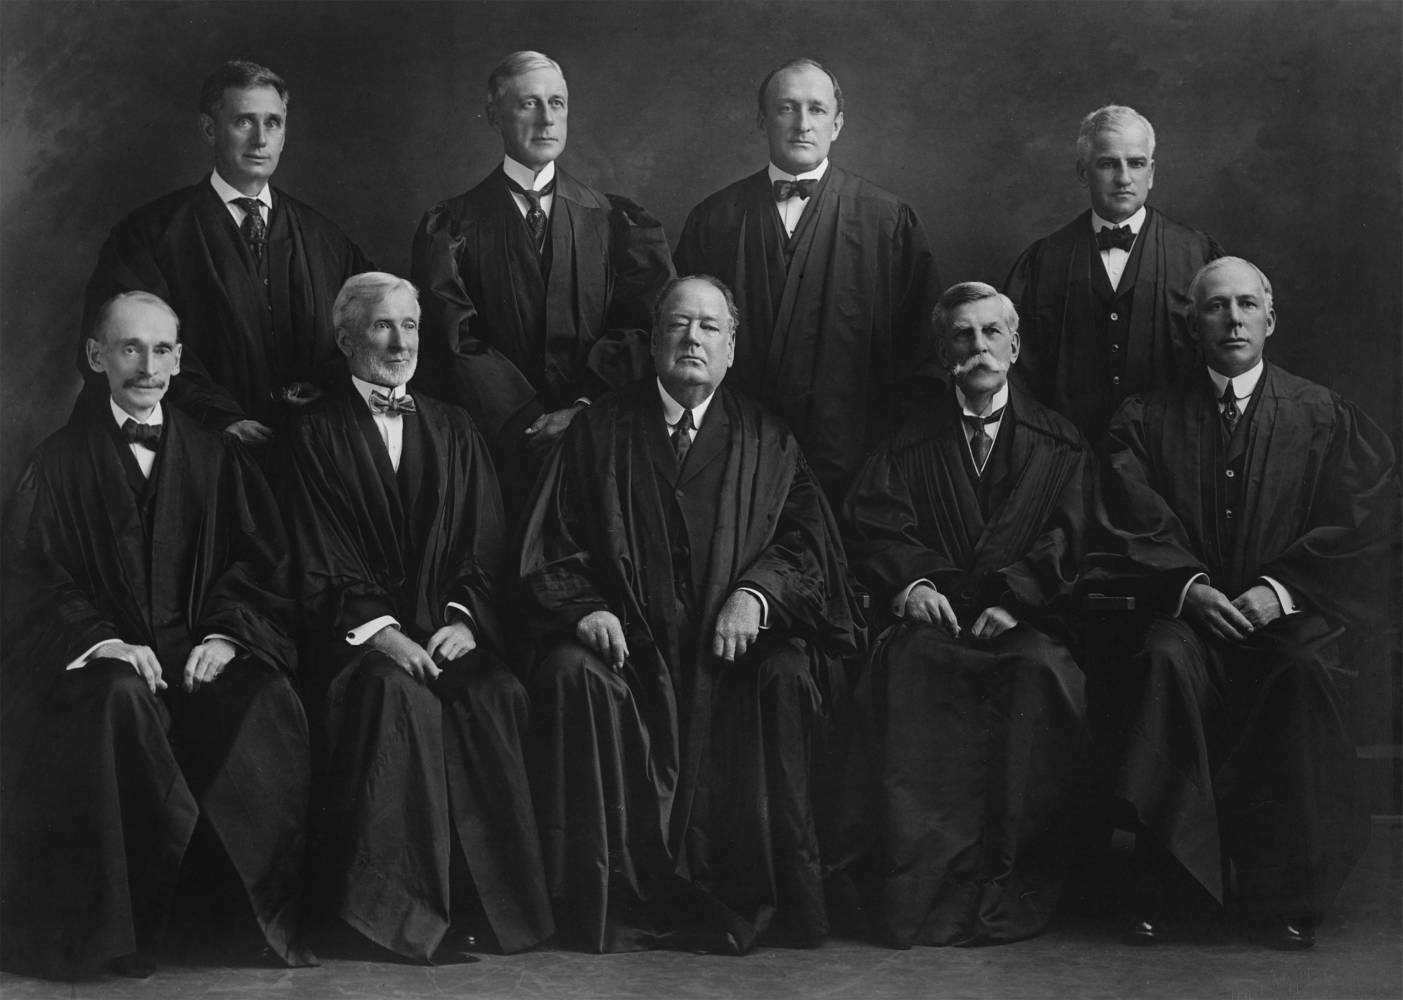 Historical black and white photo of US Supreme Court in 1917